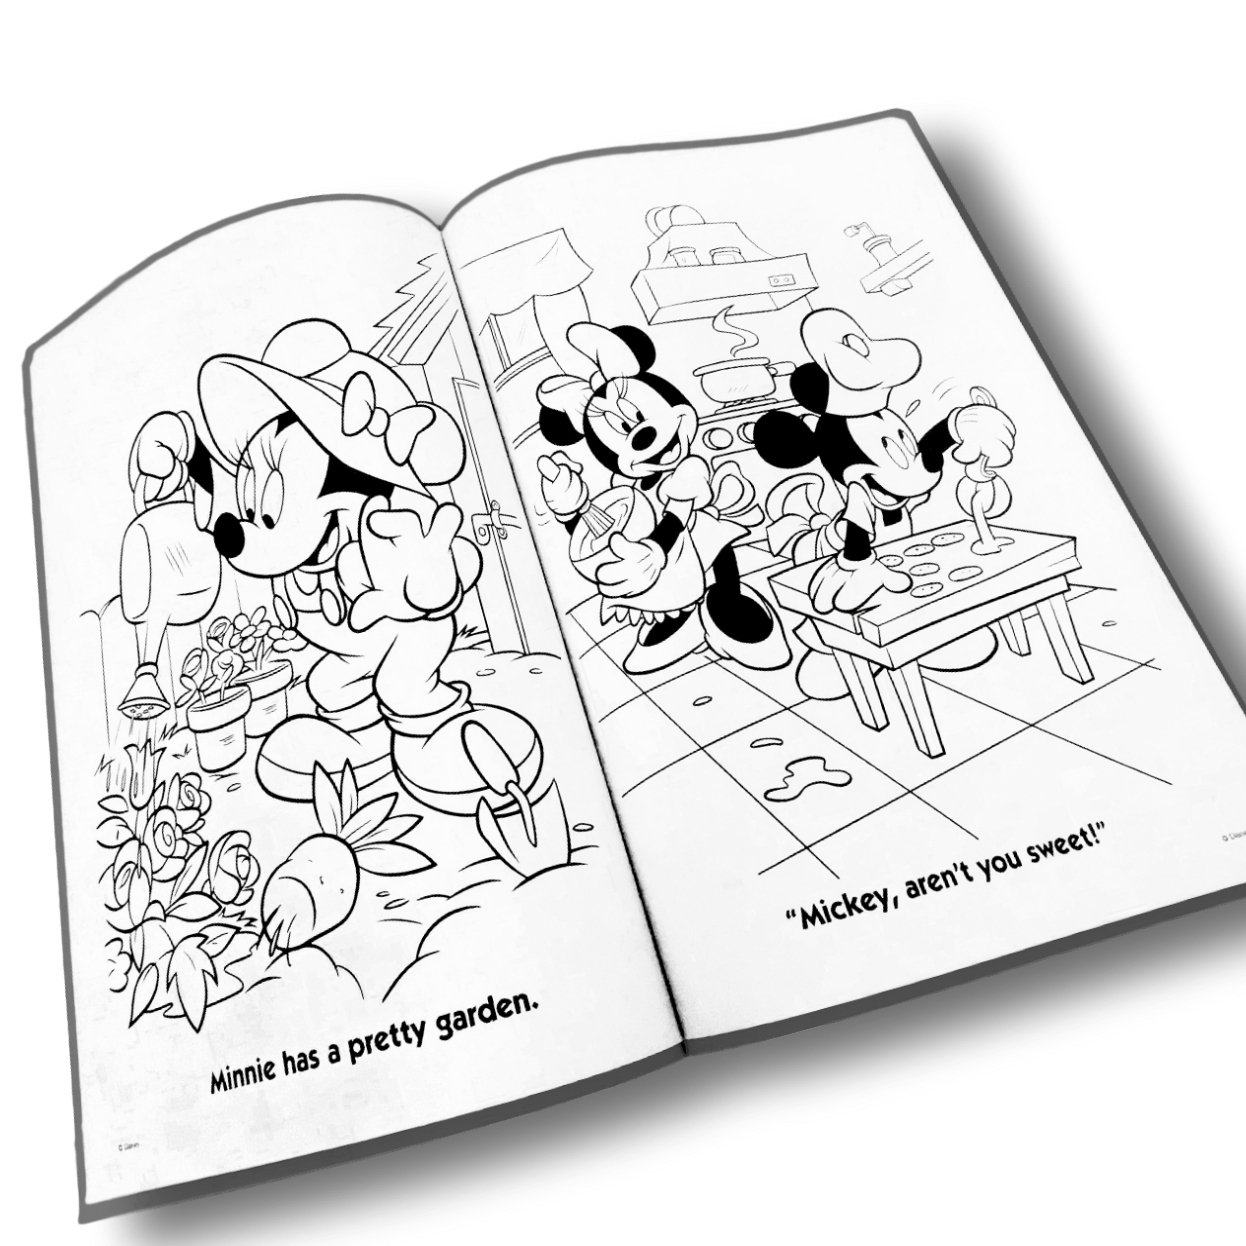 Amazoncom Mickey Mouse Coloring Book With Stickers And Markers 71wAkIYLEhL B01EI1D5US Disney Stationary